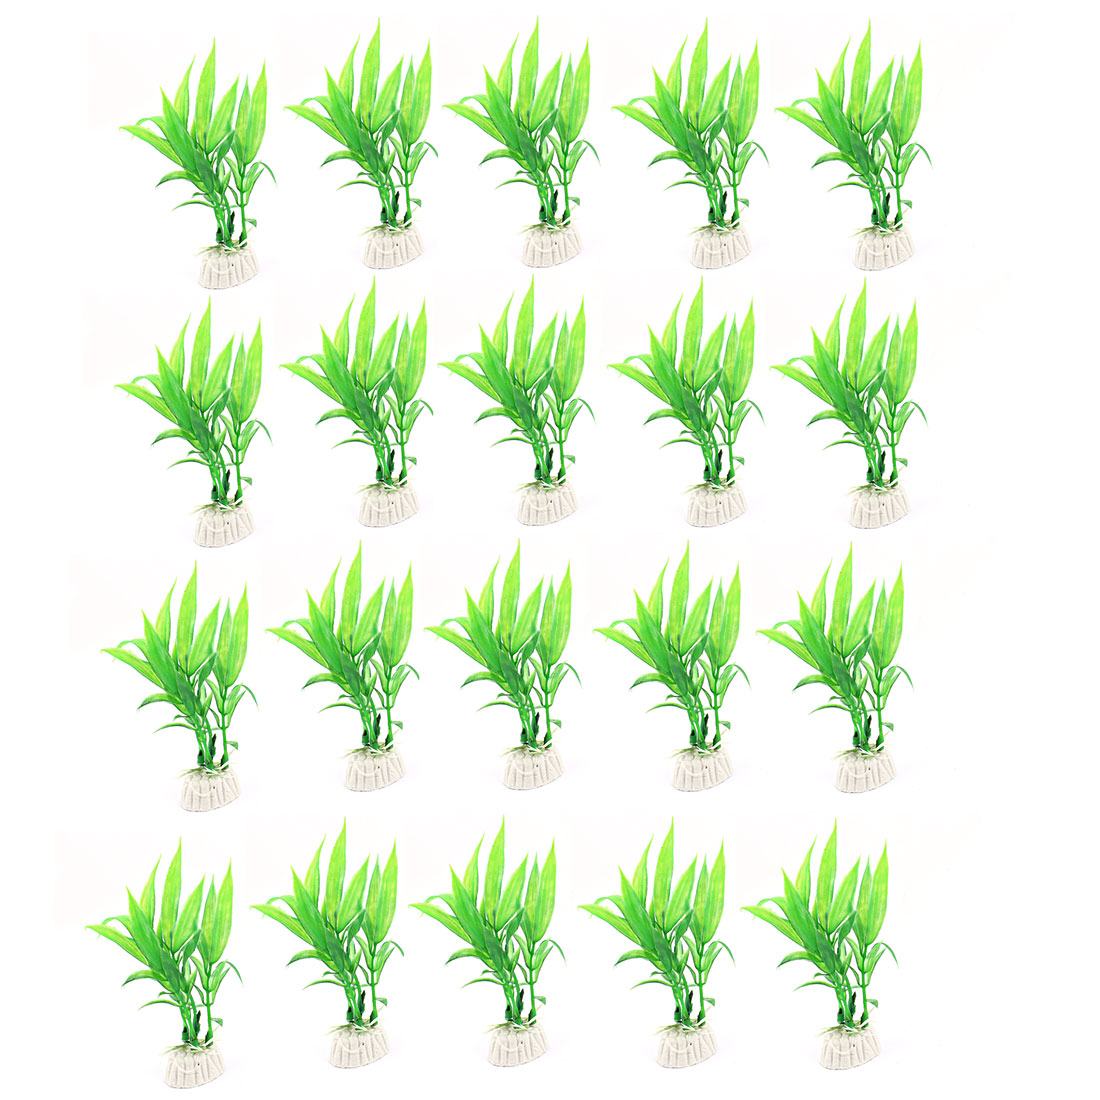 Underwater Simulation Aquatic Plant Fish Tank Aquarium Decor Green 20PCS